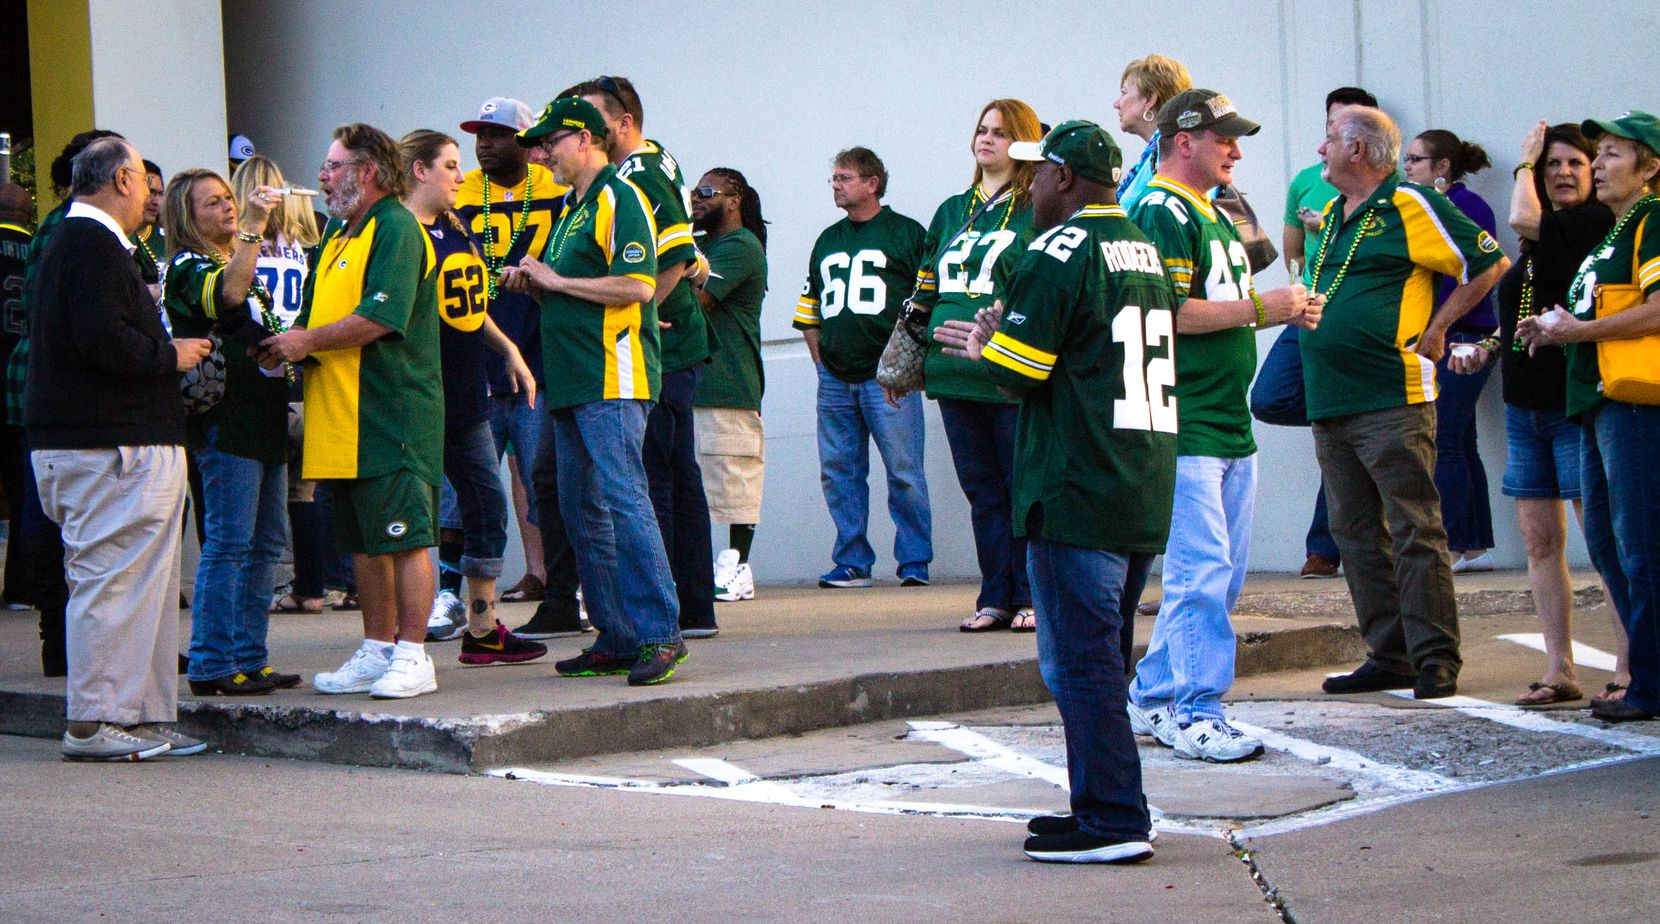 Green Bay Packers fans stretch their legs during halftime at Vernon's Gastropub in Addison.